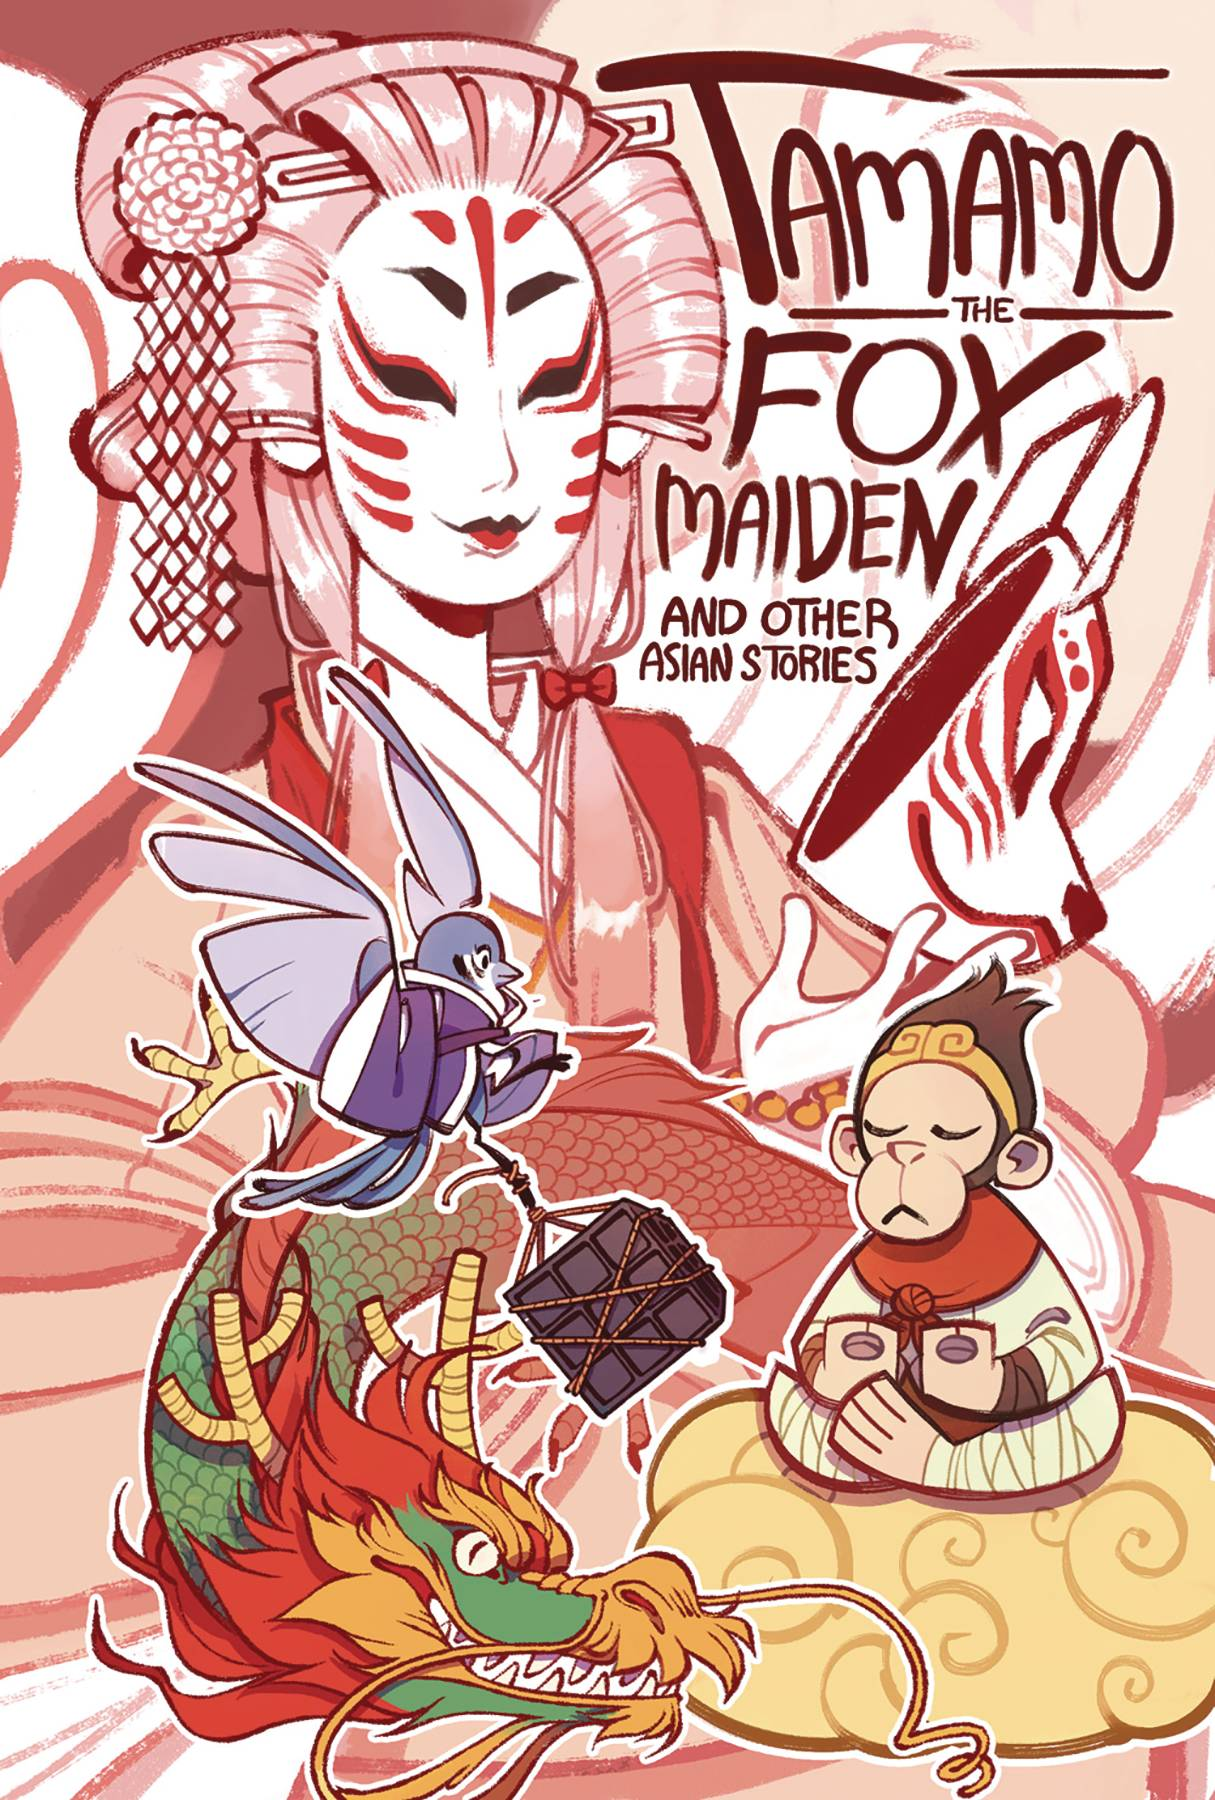 TAMAMO THE FOX MAIDEN AND OTHER ASIAN STORIES GN